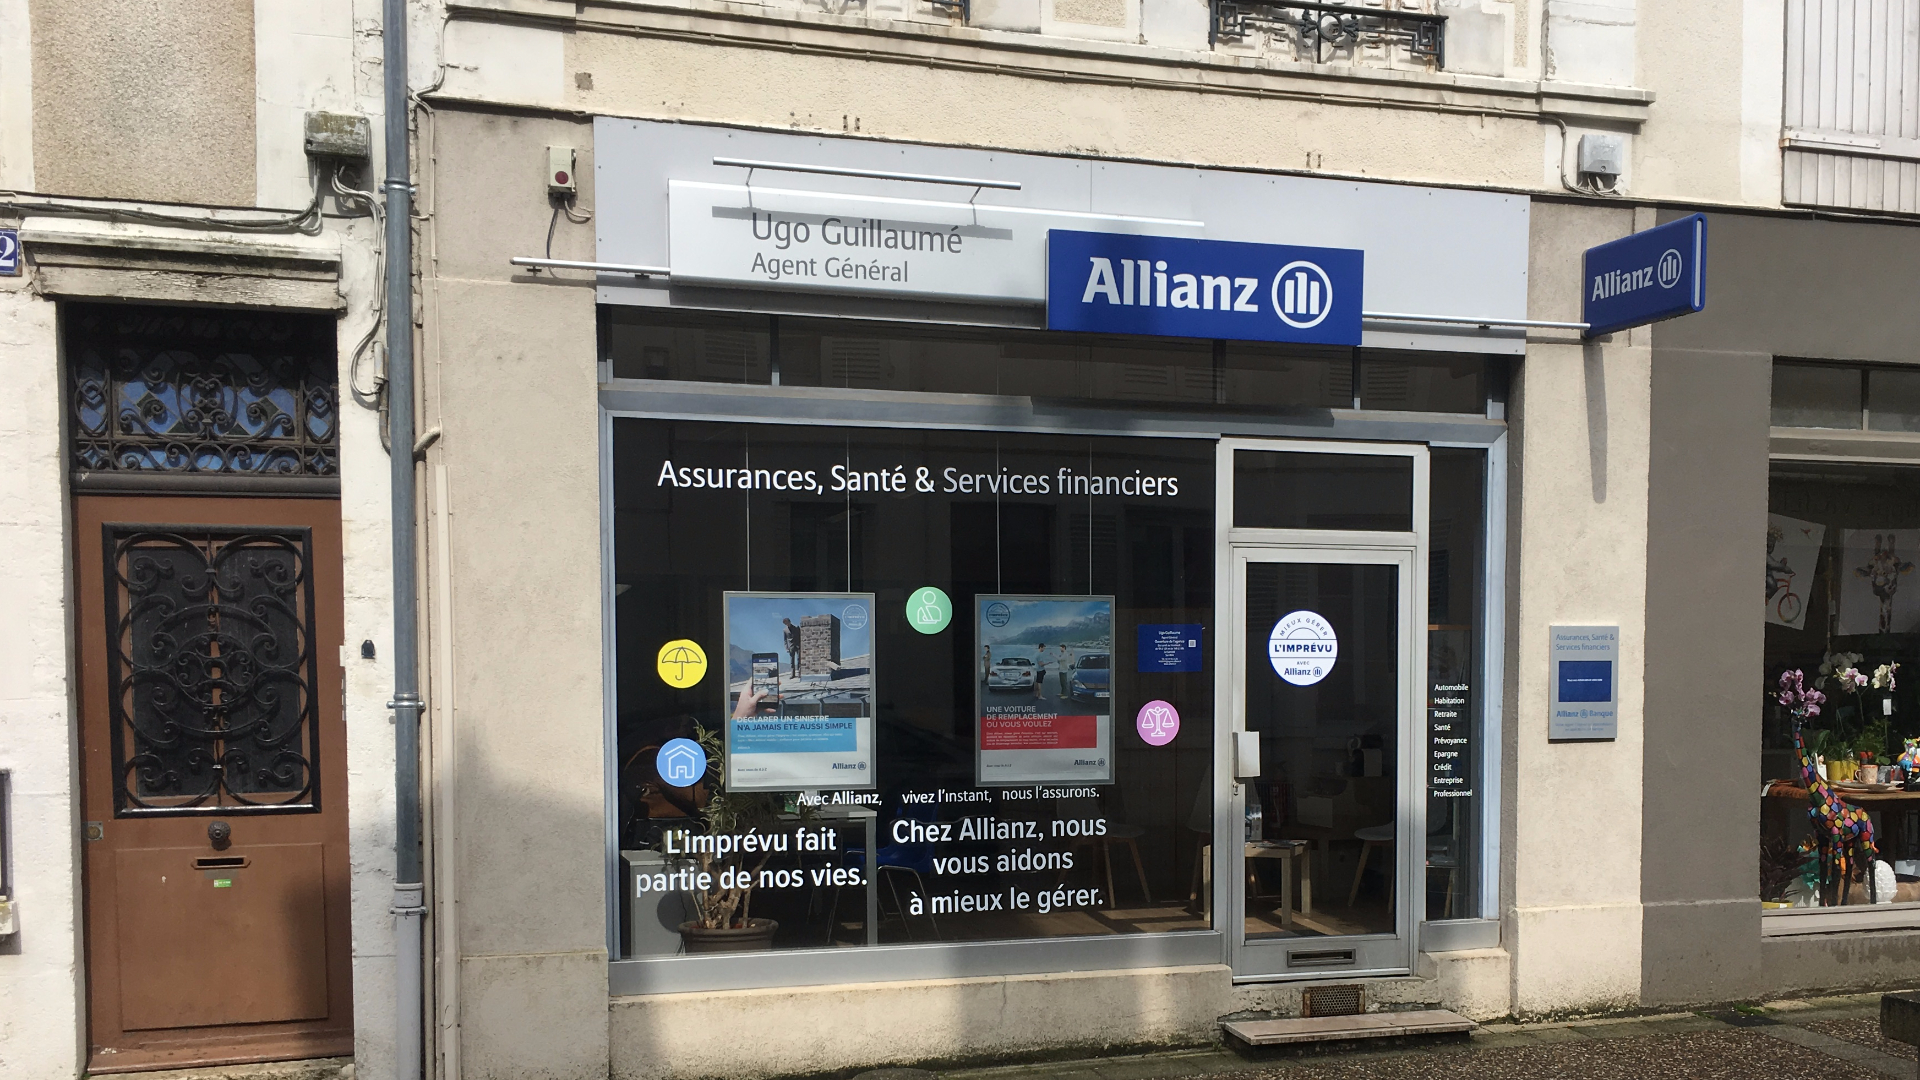 Allianz CHATEAUDUN - GUILLAUME & BROU